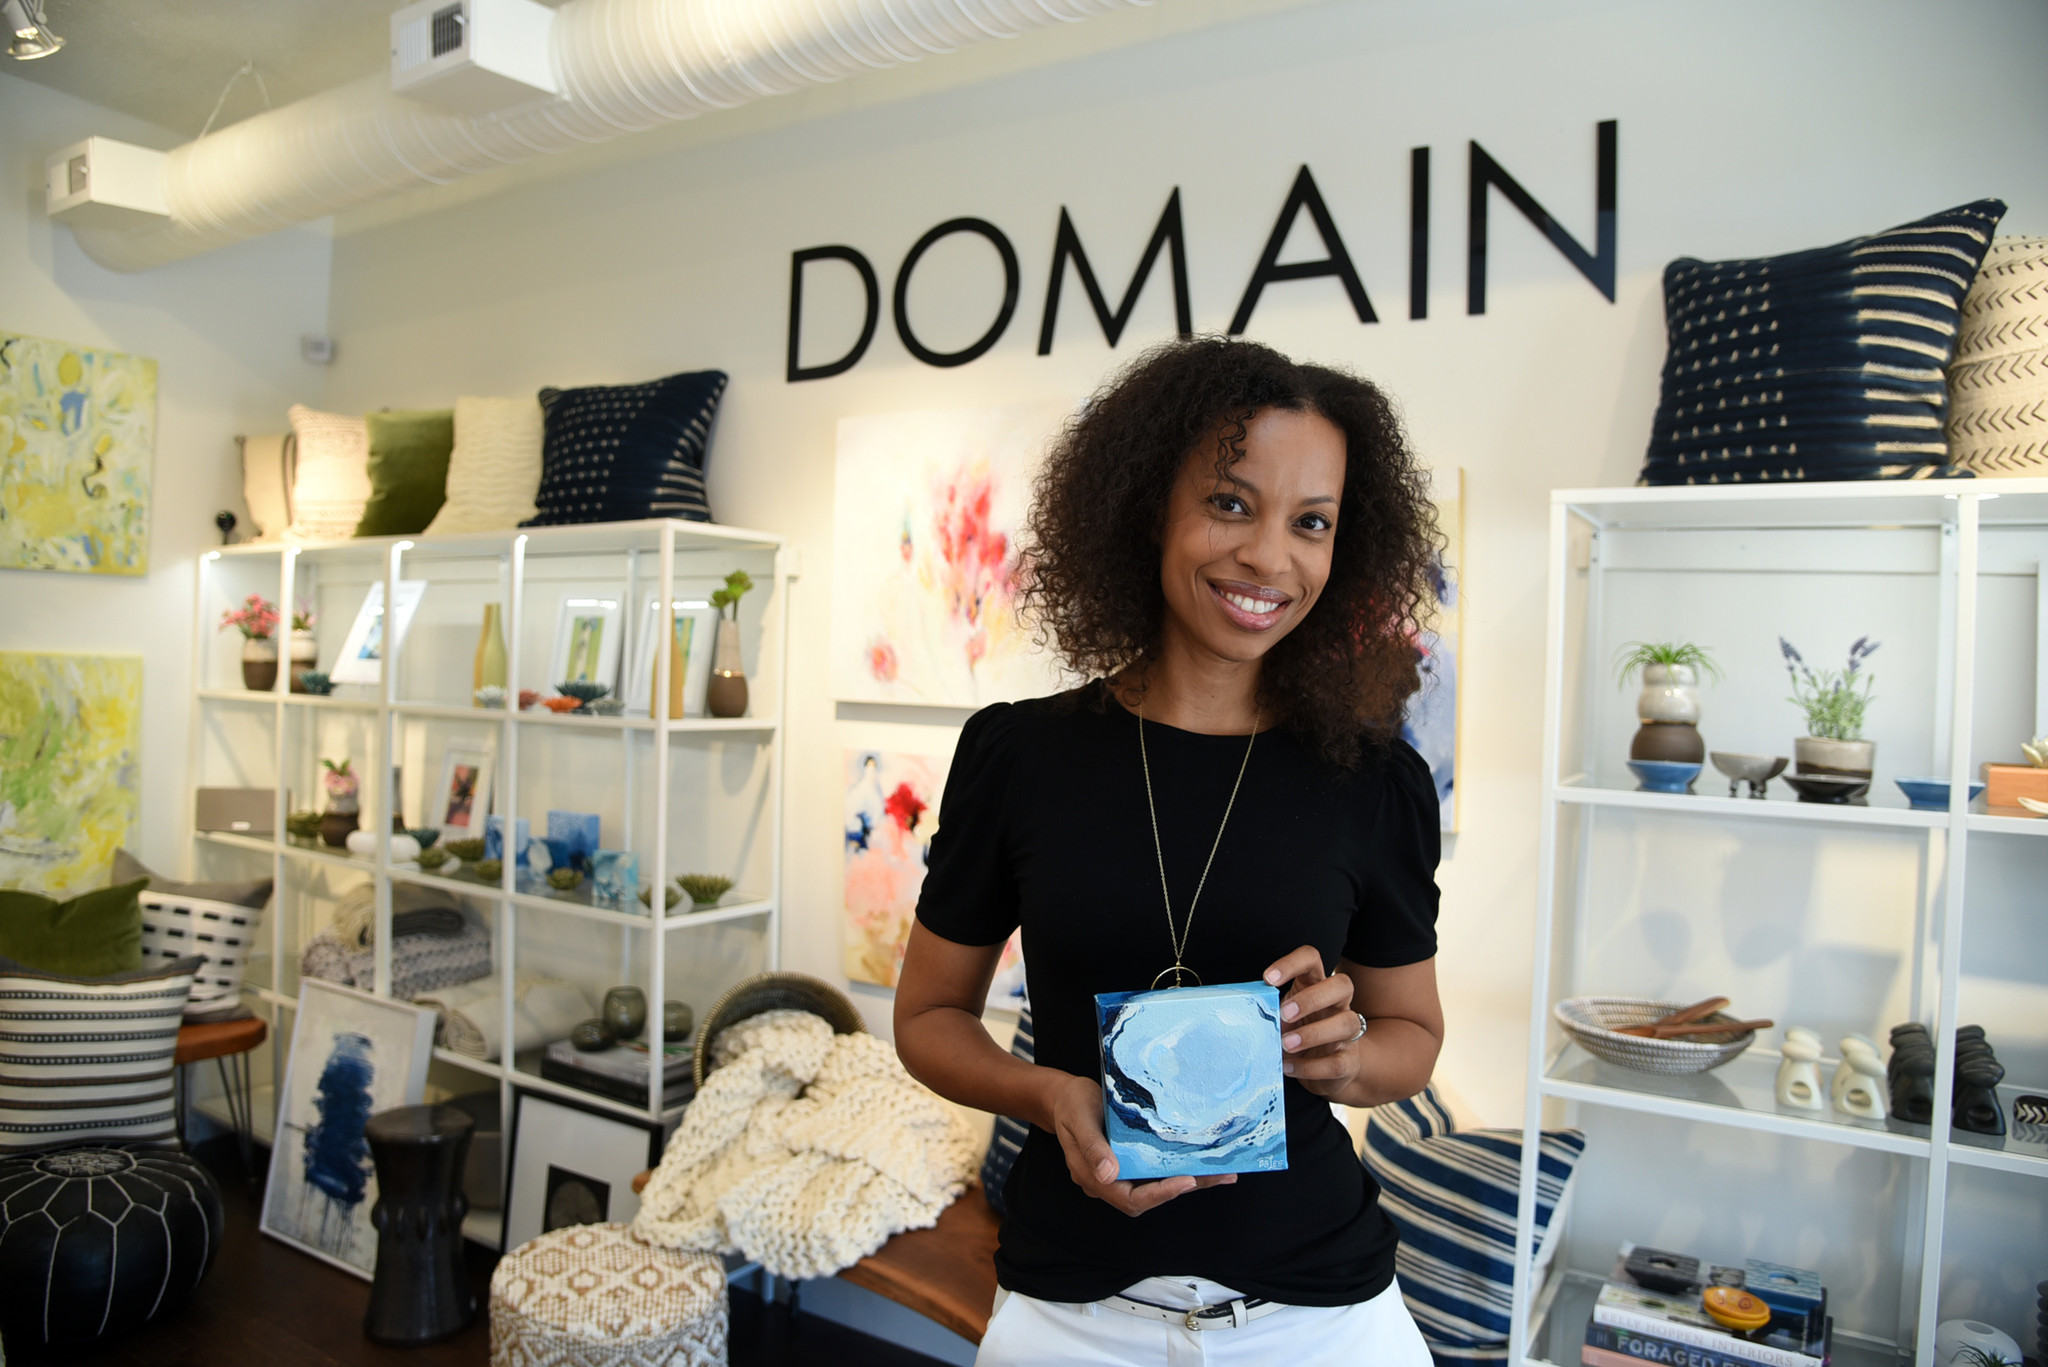 Domain Wishbone Reserve And Other New Home Decor Stores Bring Style To Maryland Homes Baltimore Sun